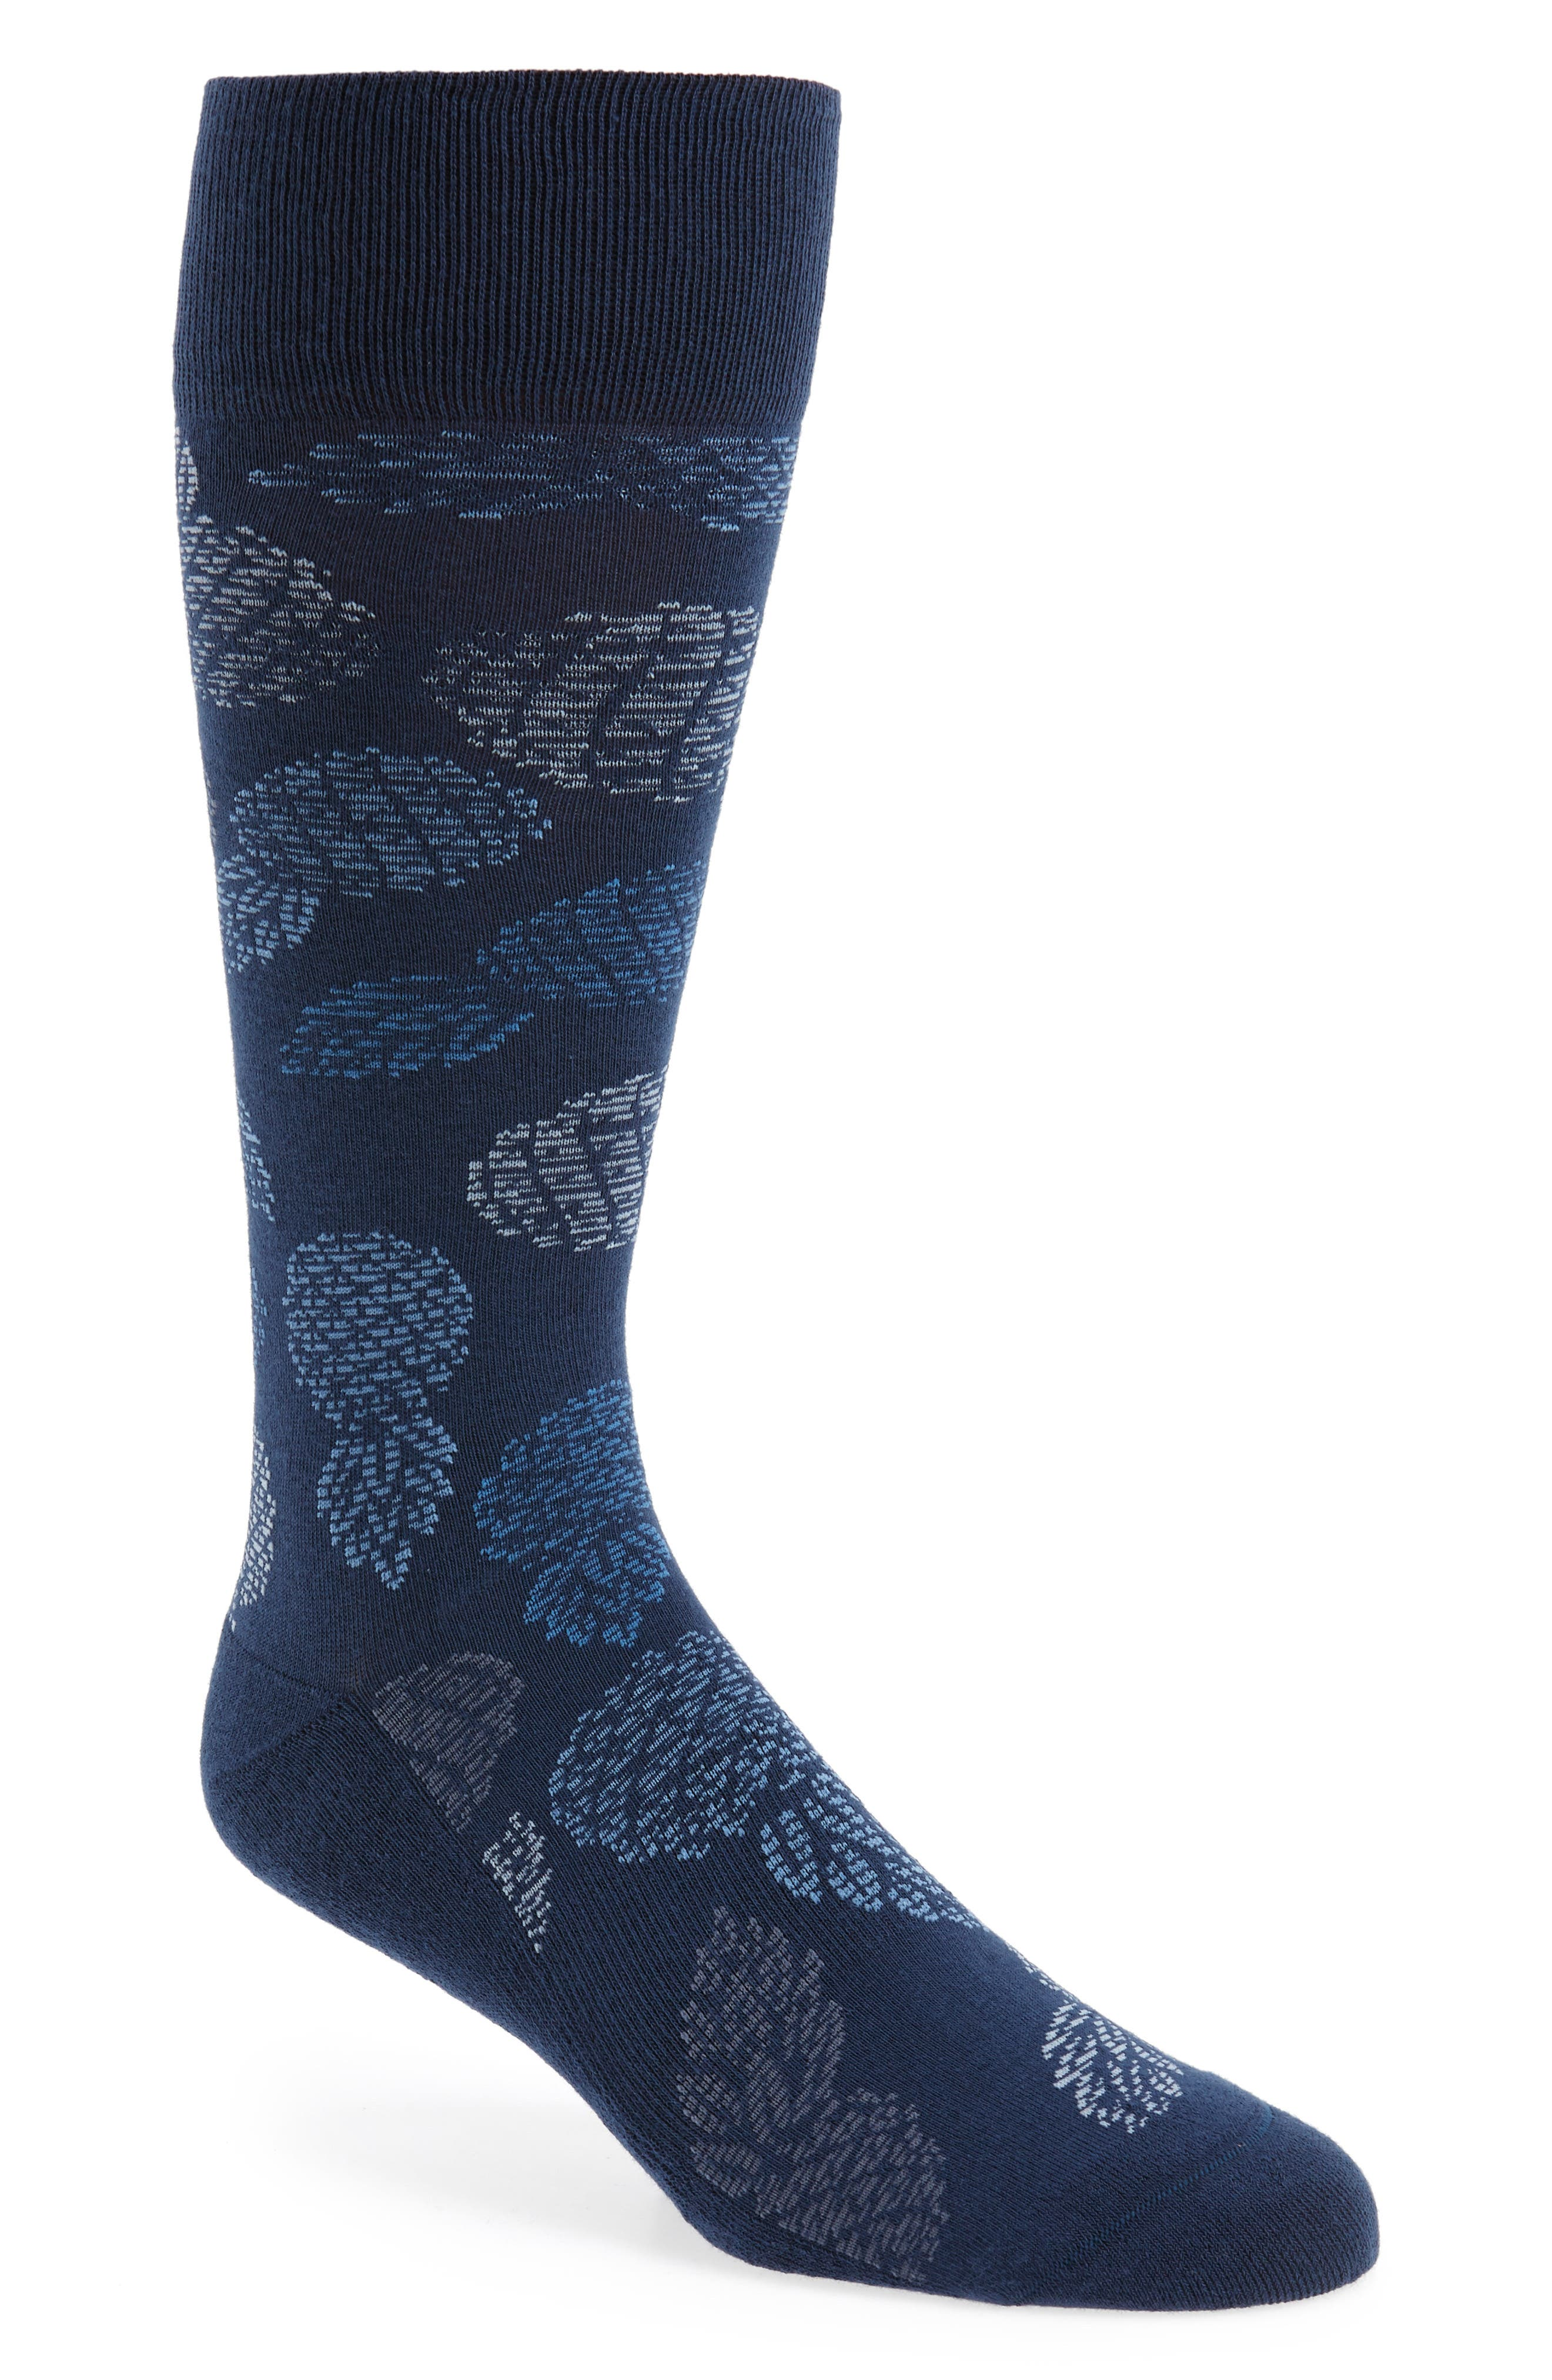 Pineapple Party Socks,                         Main,                         color, Navy/ Blue